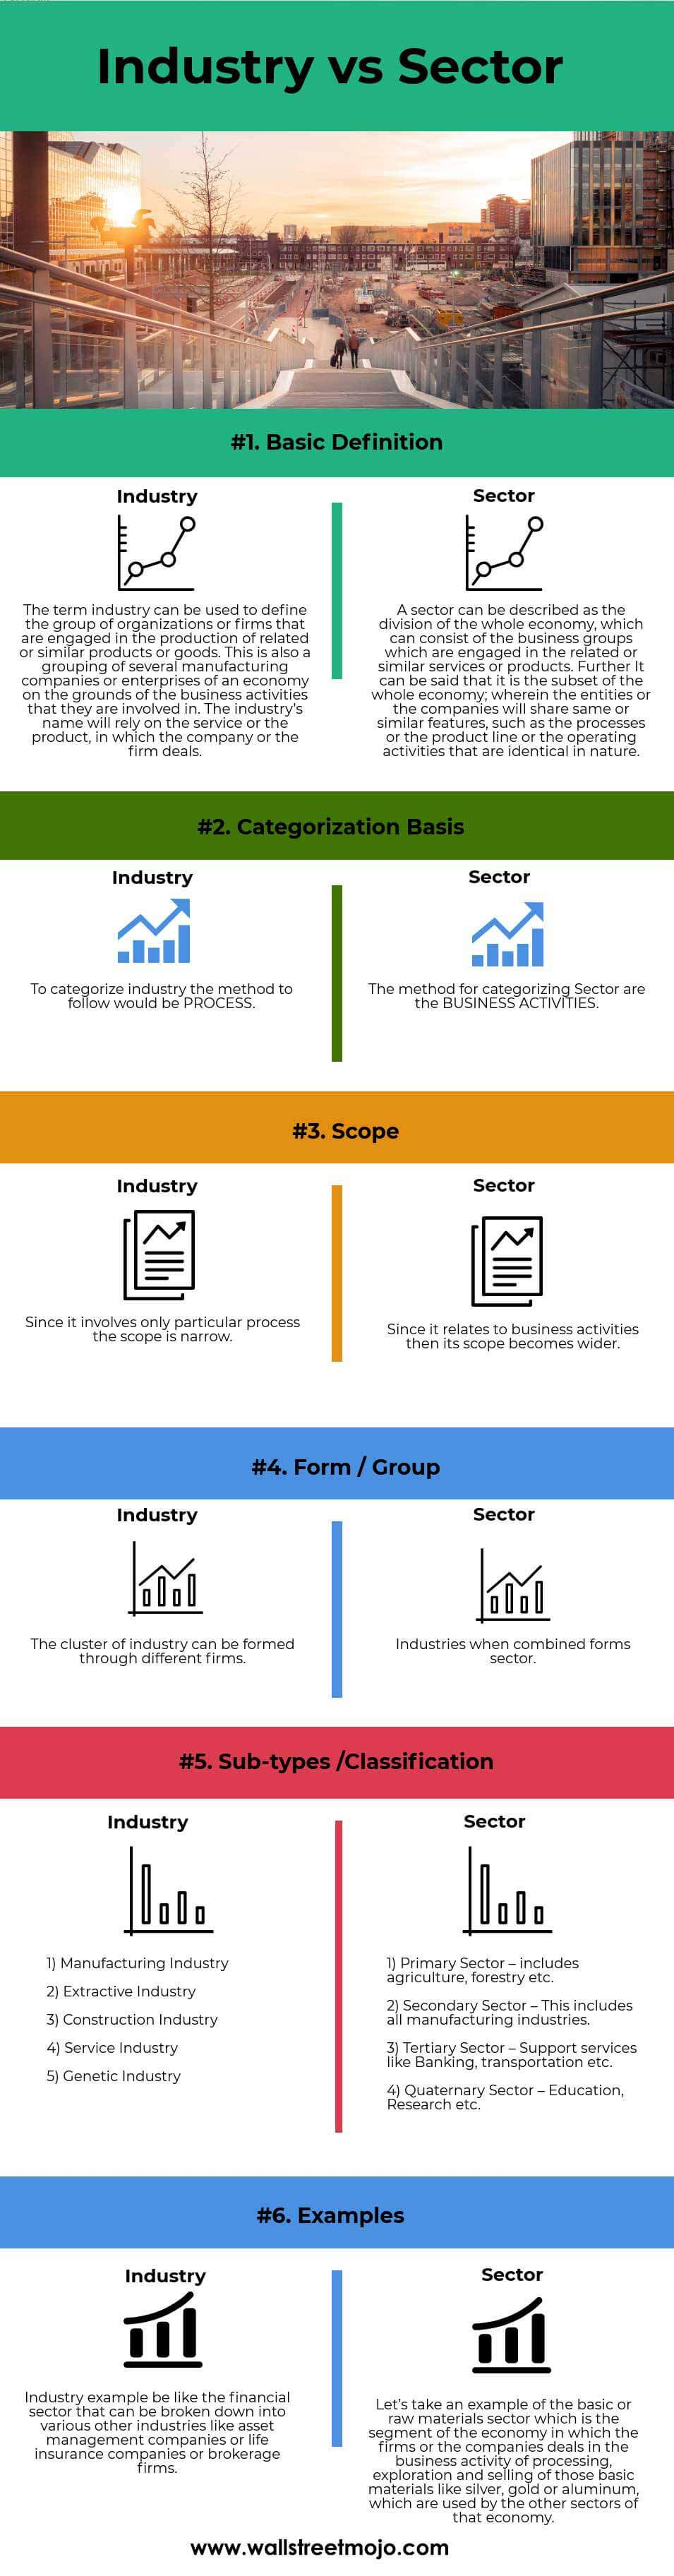 Industry-vs-Sector-info